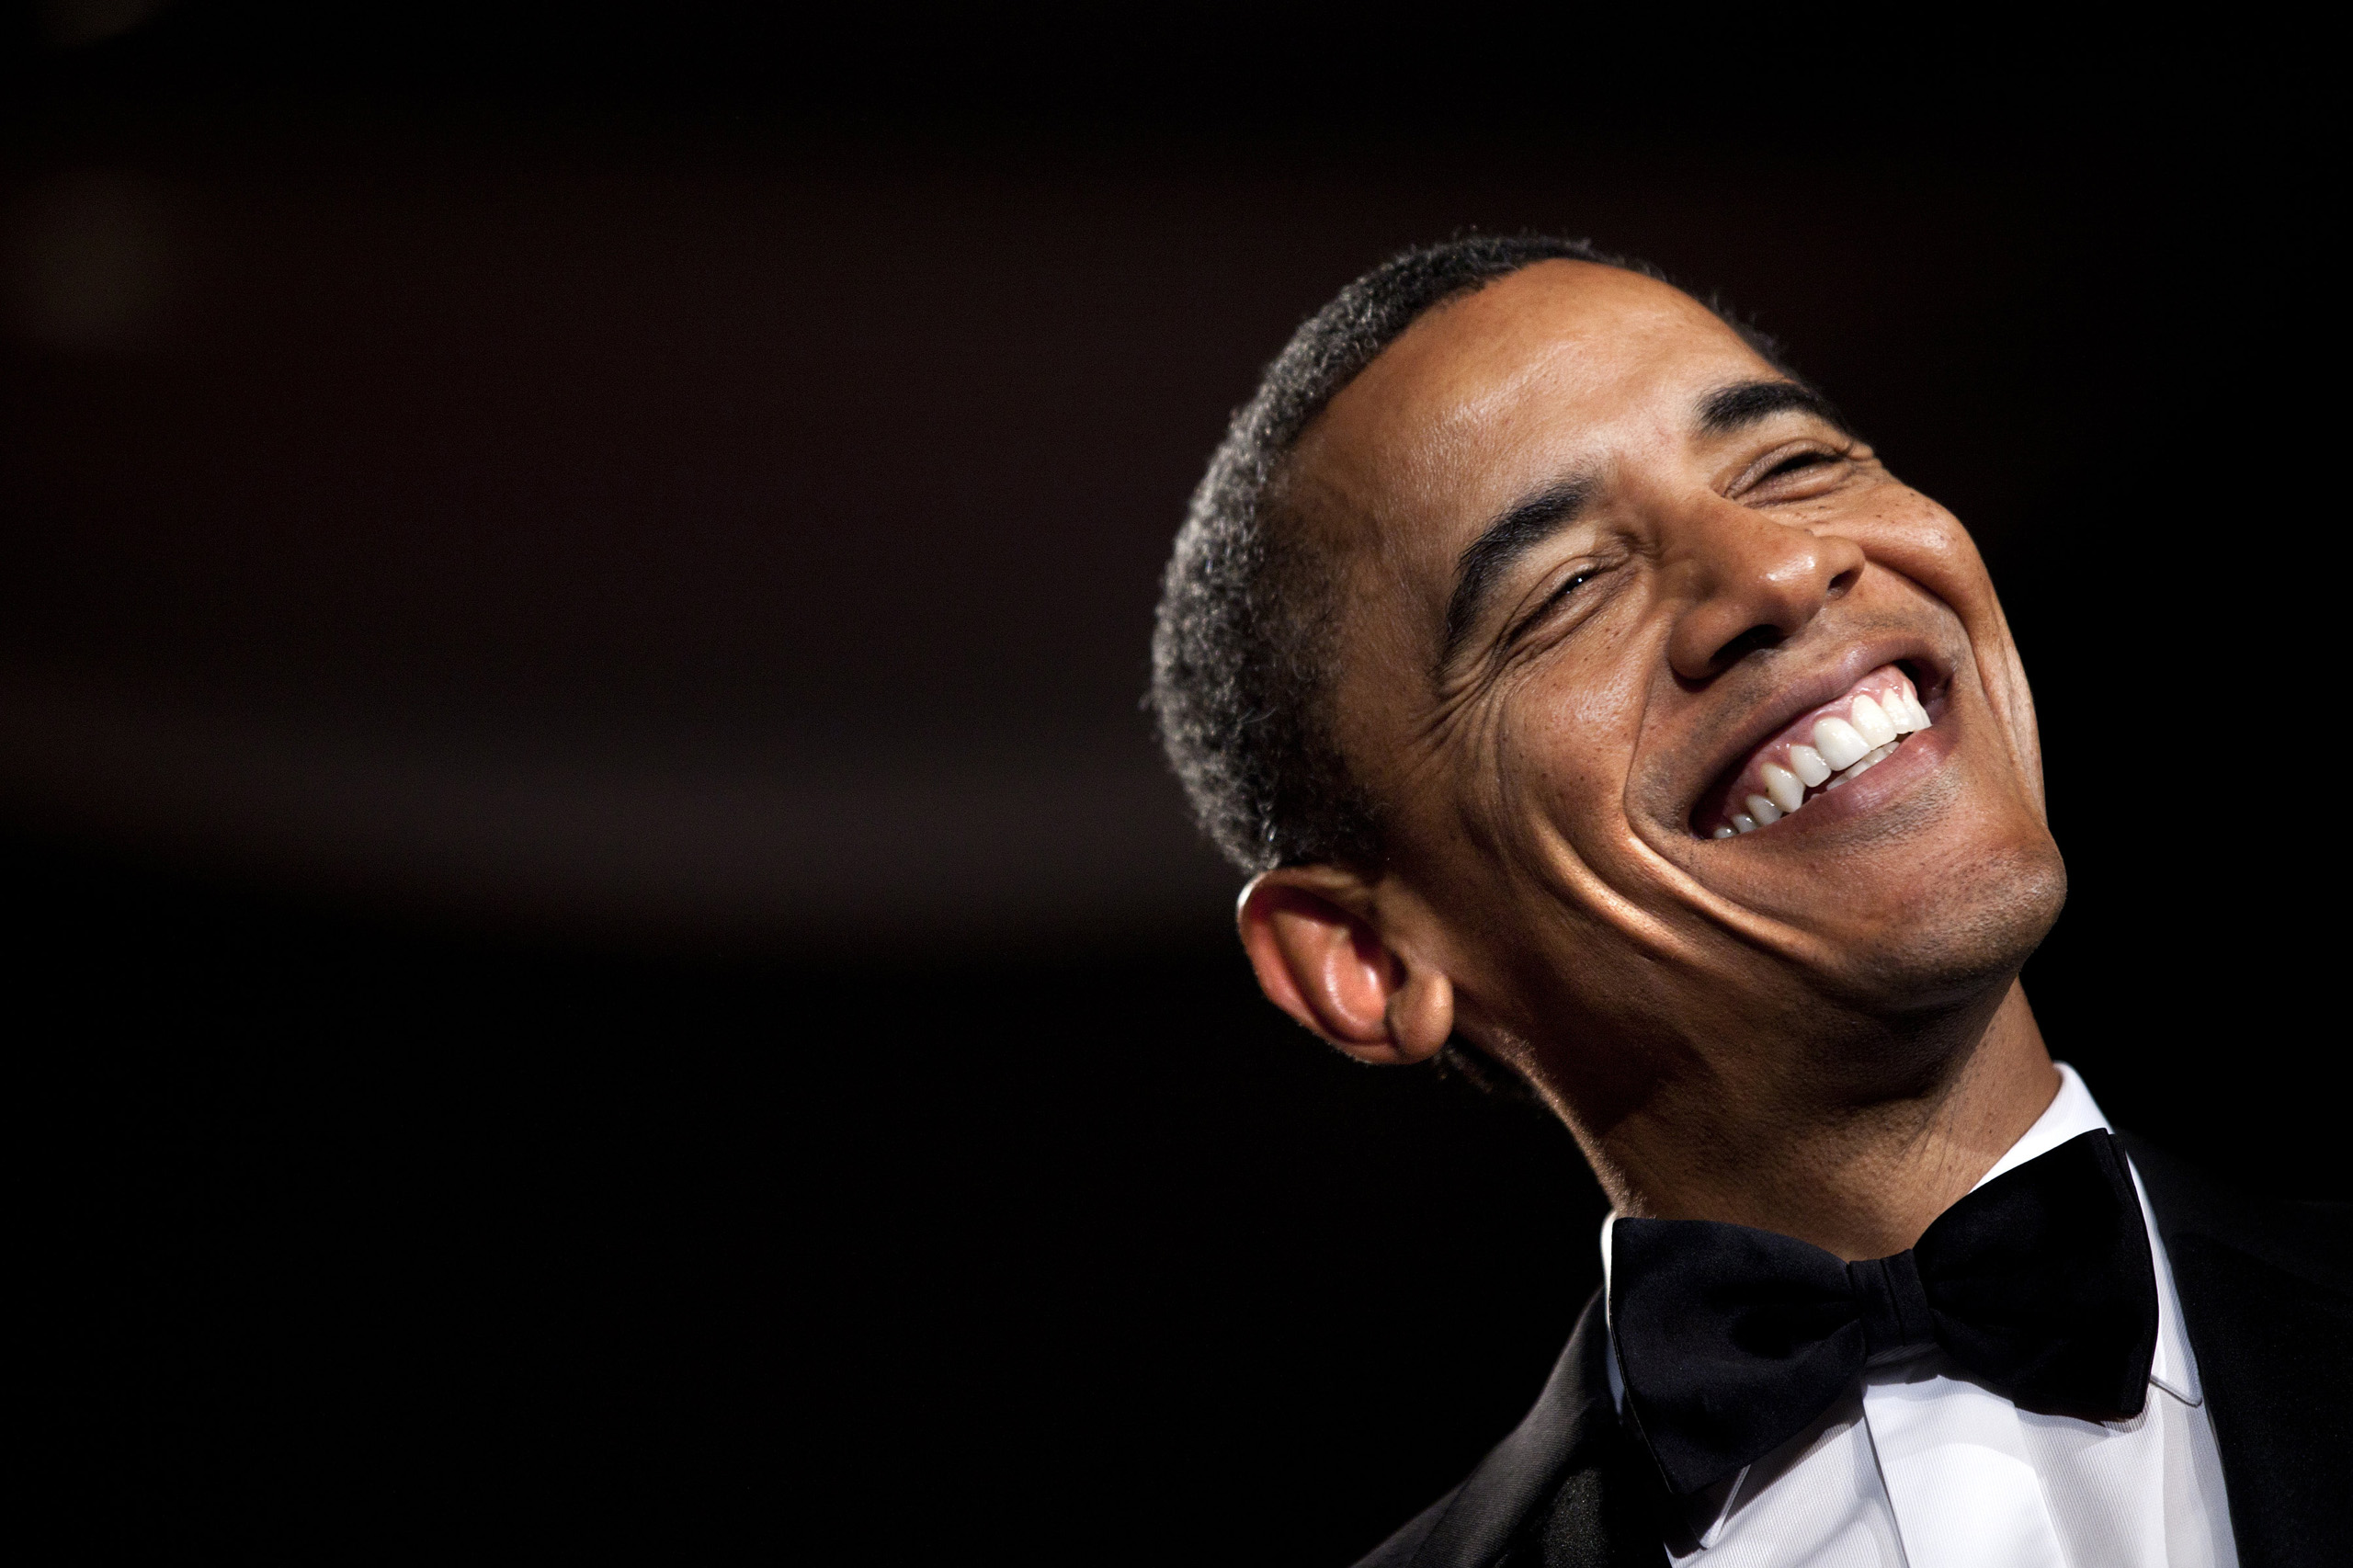 Barack Obama smiles while speaking during the 36th annual National Italian American Foundation Gala on Oct. 29, 2011.